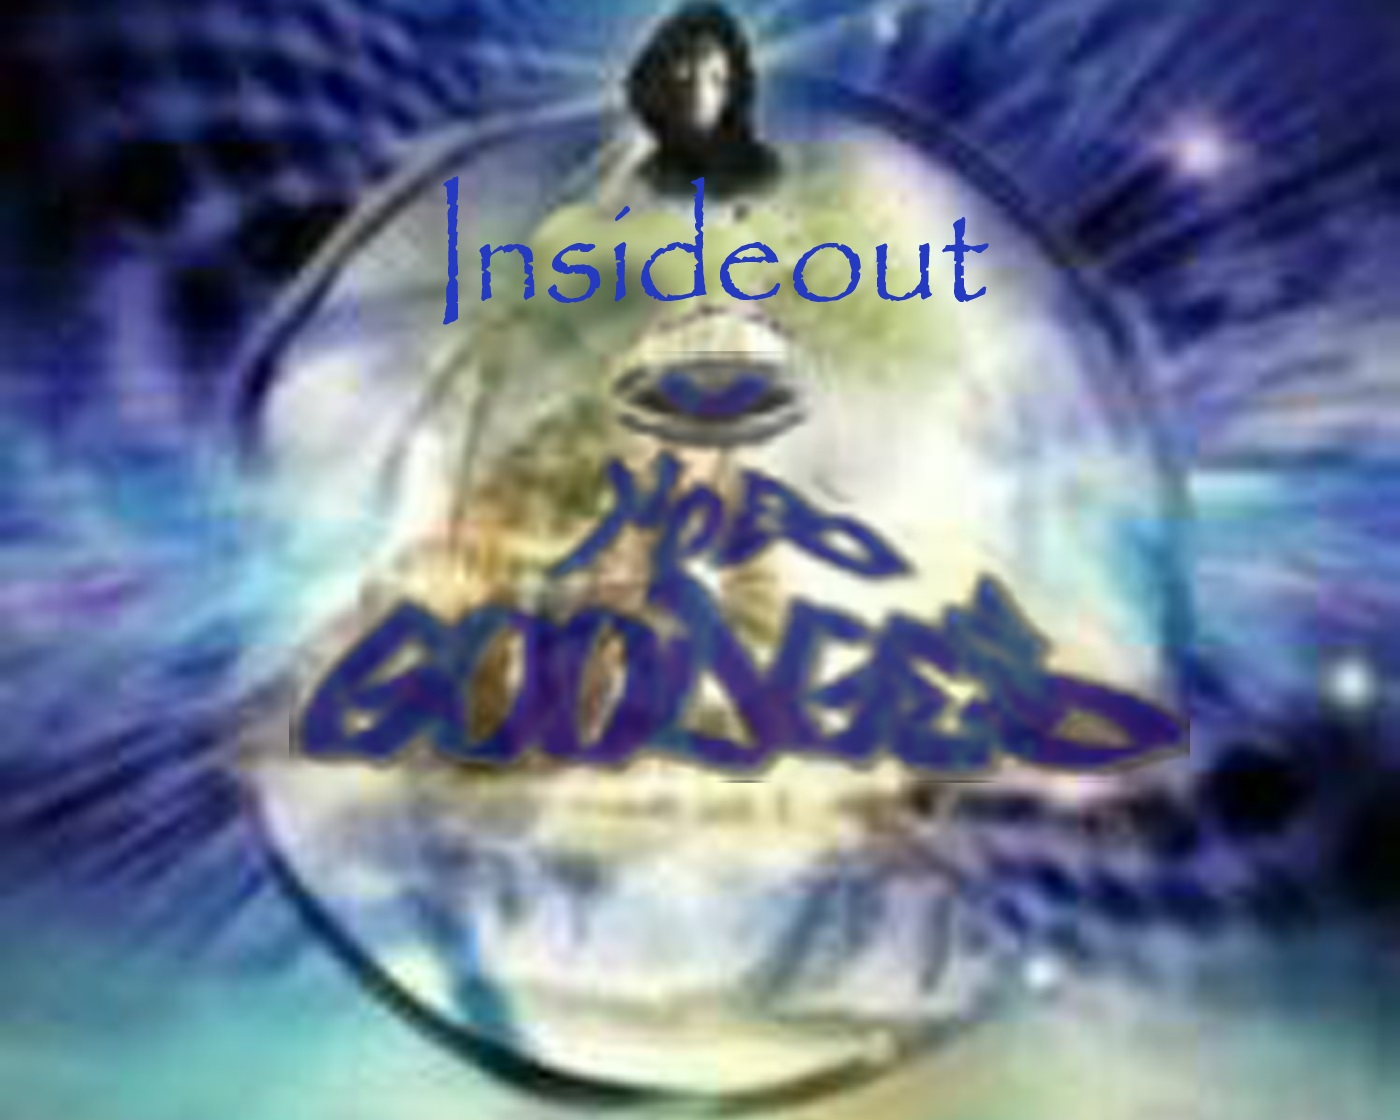 Insideout - This is a very early recording and is being released as part of our 15 years of music celebrations. 6 of the tracks are some of the first self produced pieces in our own studio and mastered by Simon Murphy. Turnaround & Life were recorded before that at NRT studios with guests Alex Tsentides, Nathan Furness, Paul O'Neill and Lia Gray.Listen to Insideout exclusively at CDBABY, at the link below.